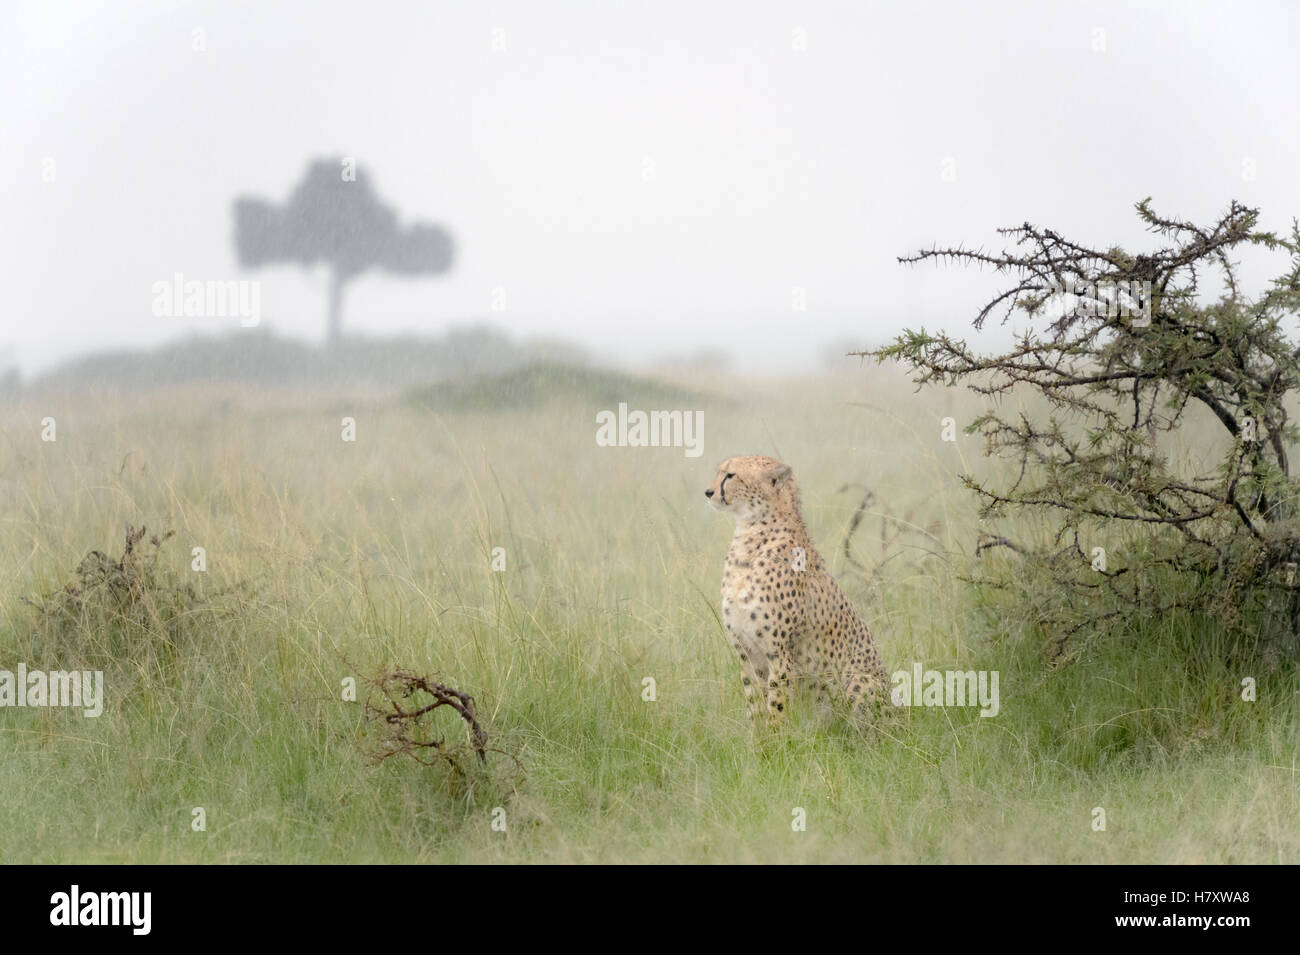 Cheetah (Acinonix jubatus) assis sur les précipitations au cours de la savane, Maasai Mara National Reserve, Photo Stock